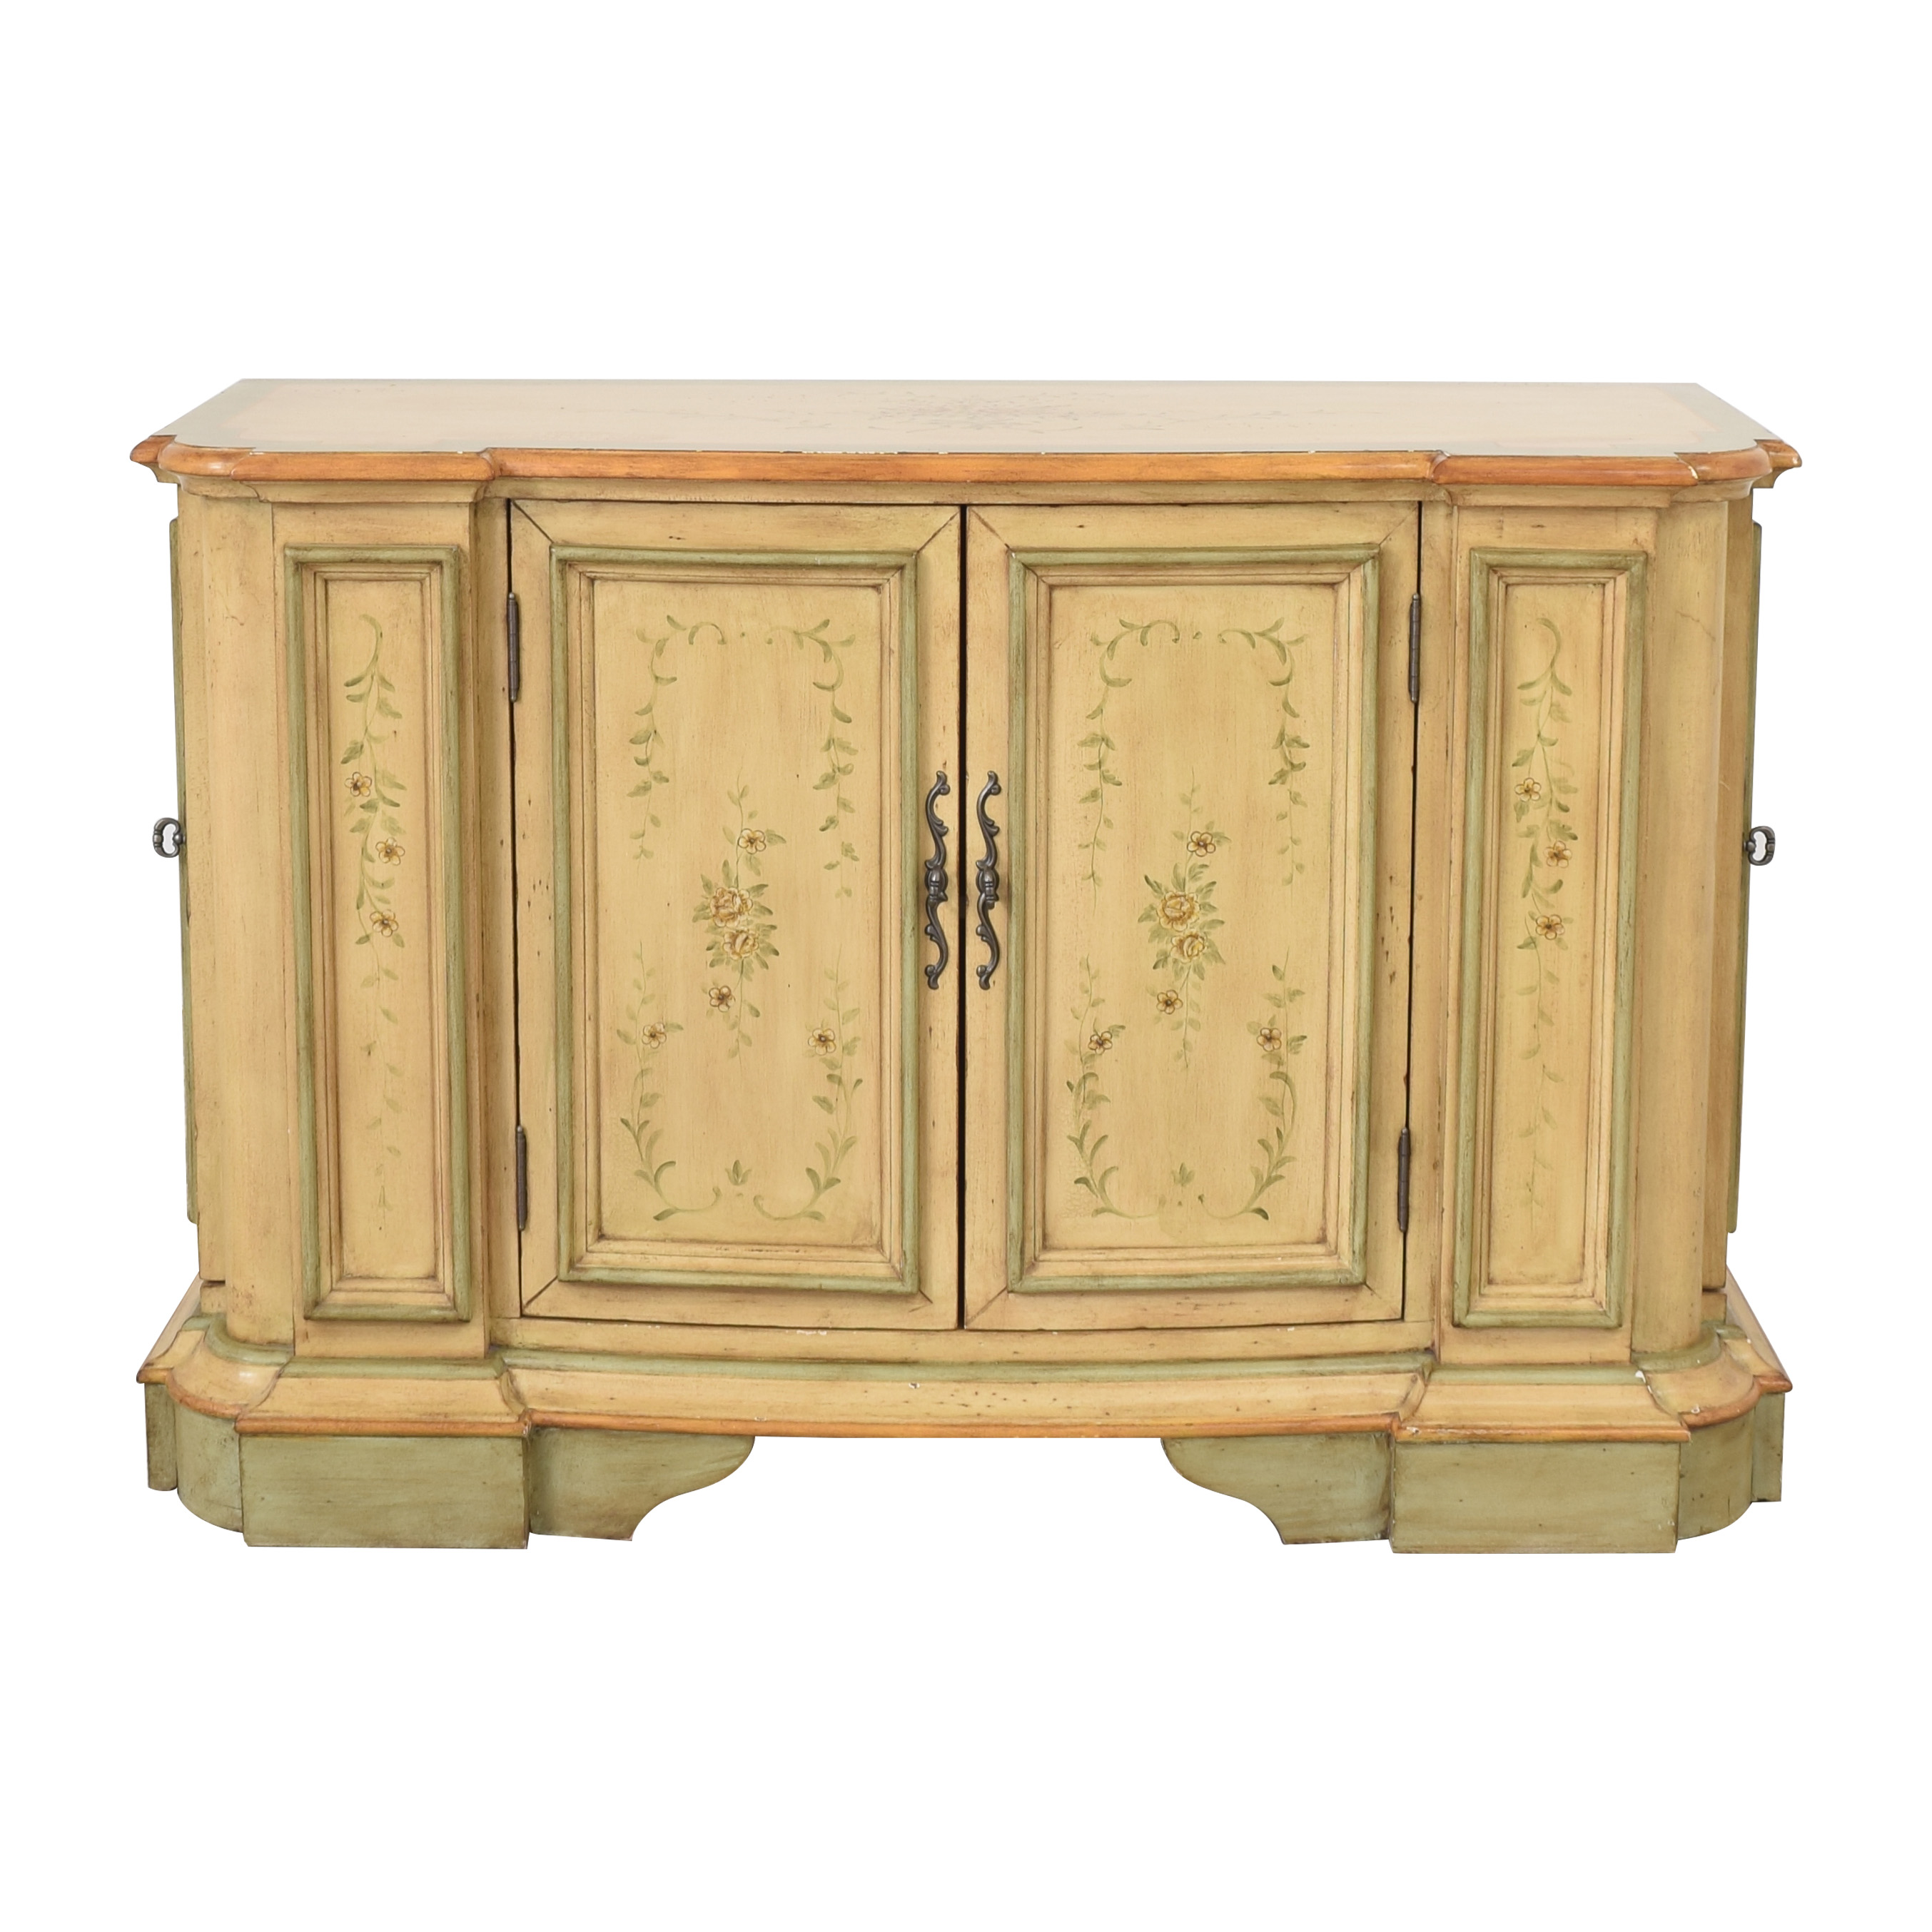 Powell English Garden Console Cabinet / Storage